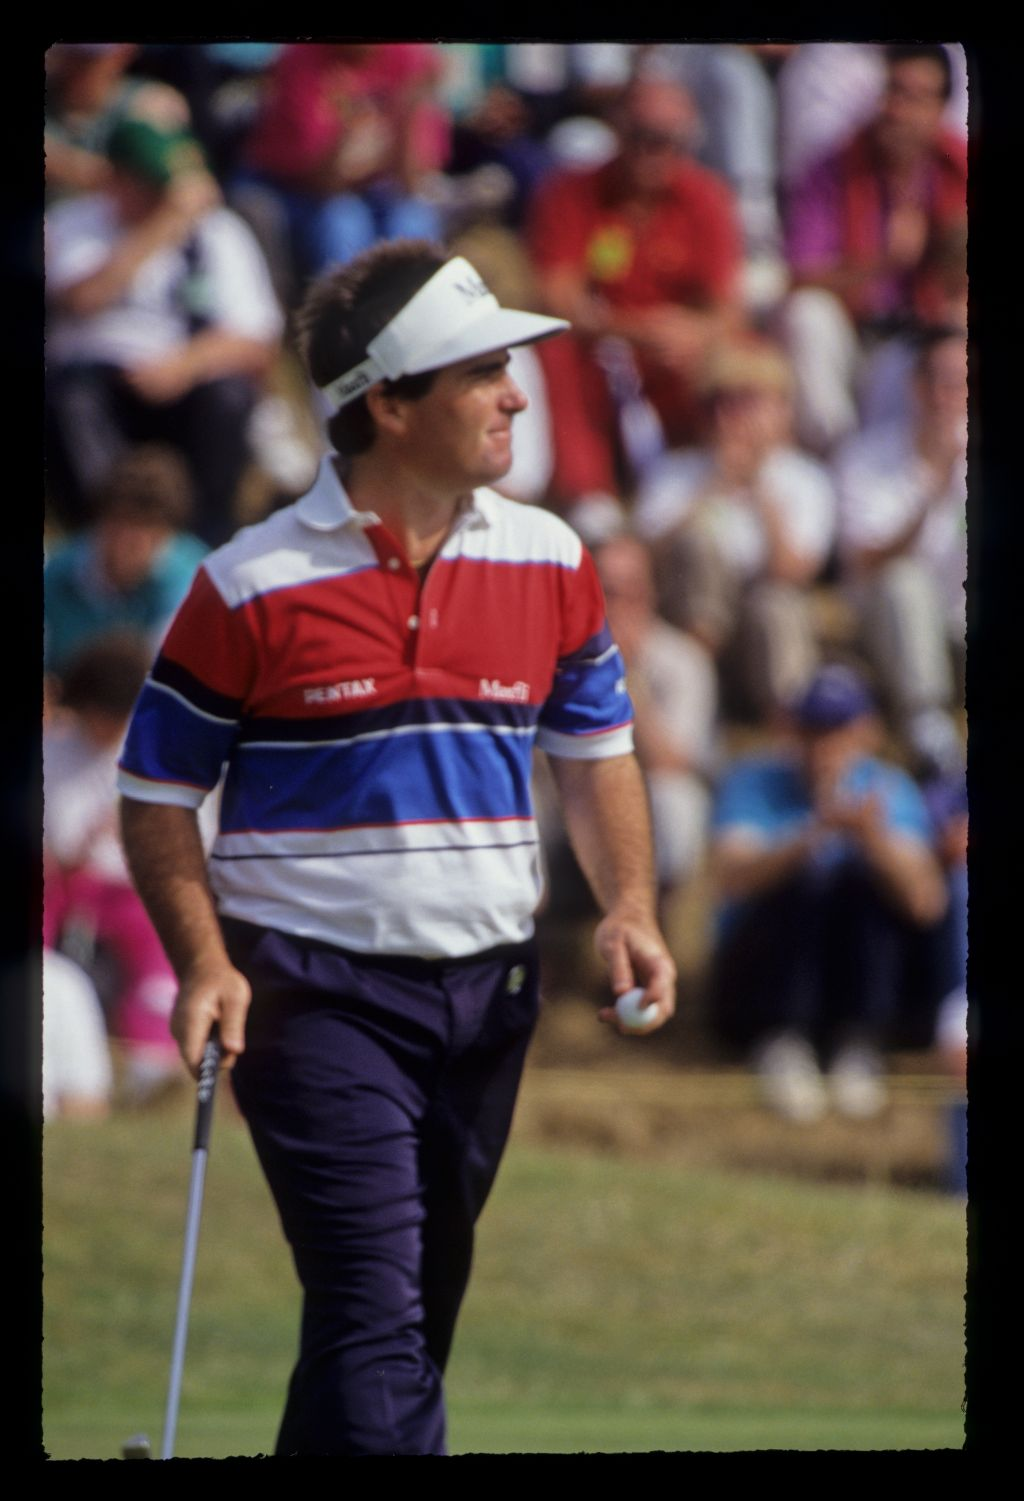 Craig Parry leaving the green on his way to eighth place during the 1991 Open Championship